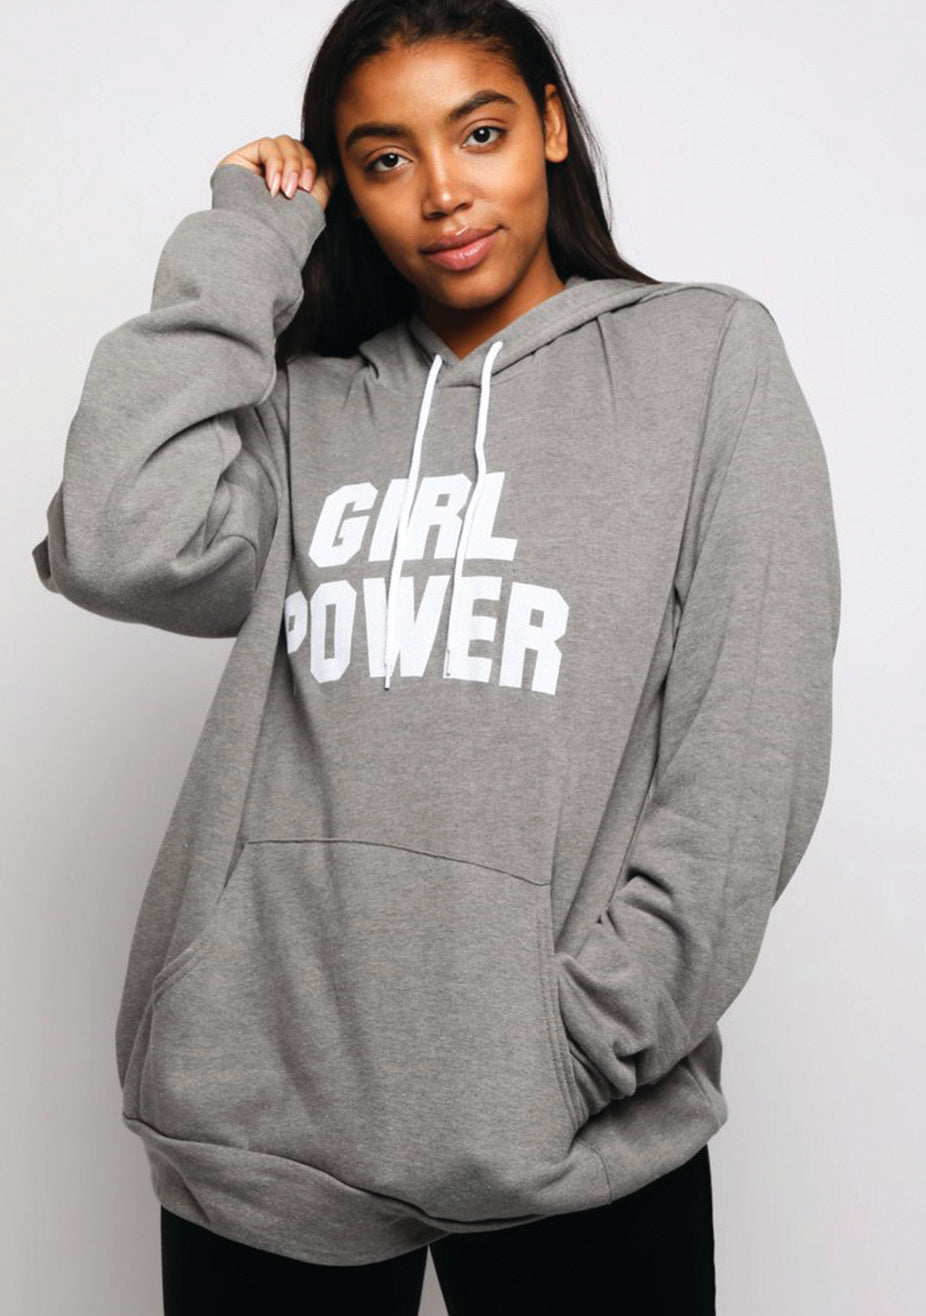 Girl Power Unisex  Fleece Pullover Hoodie